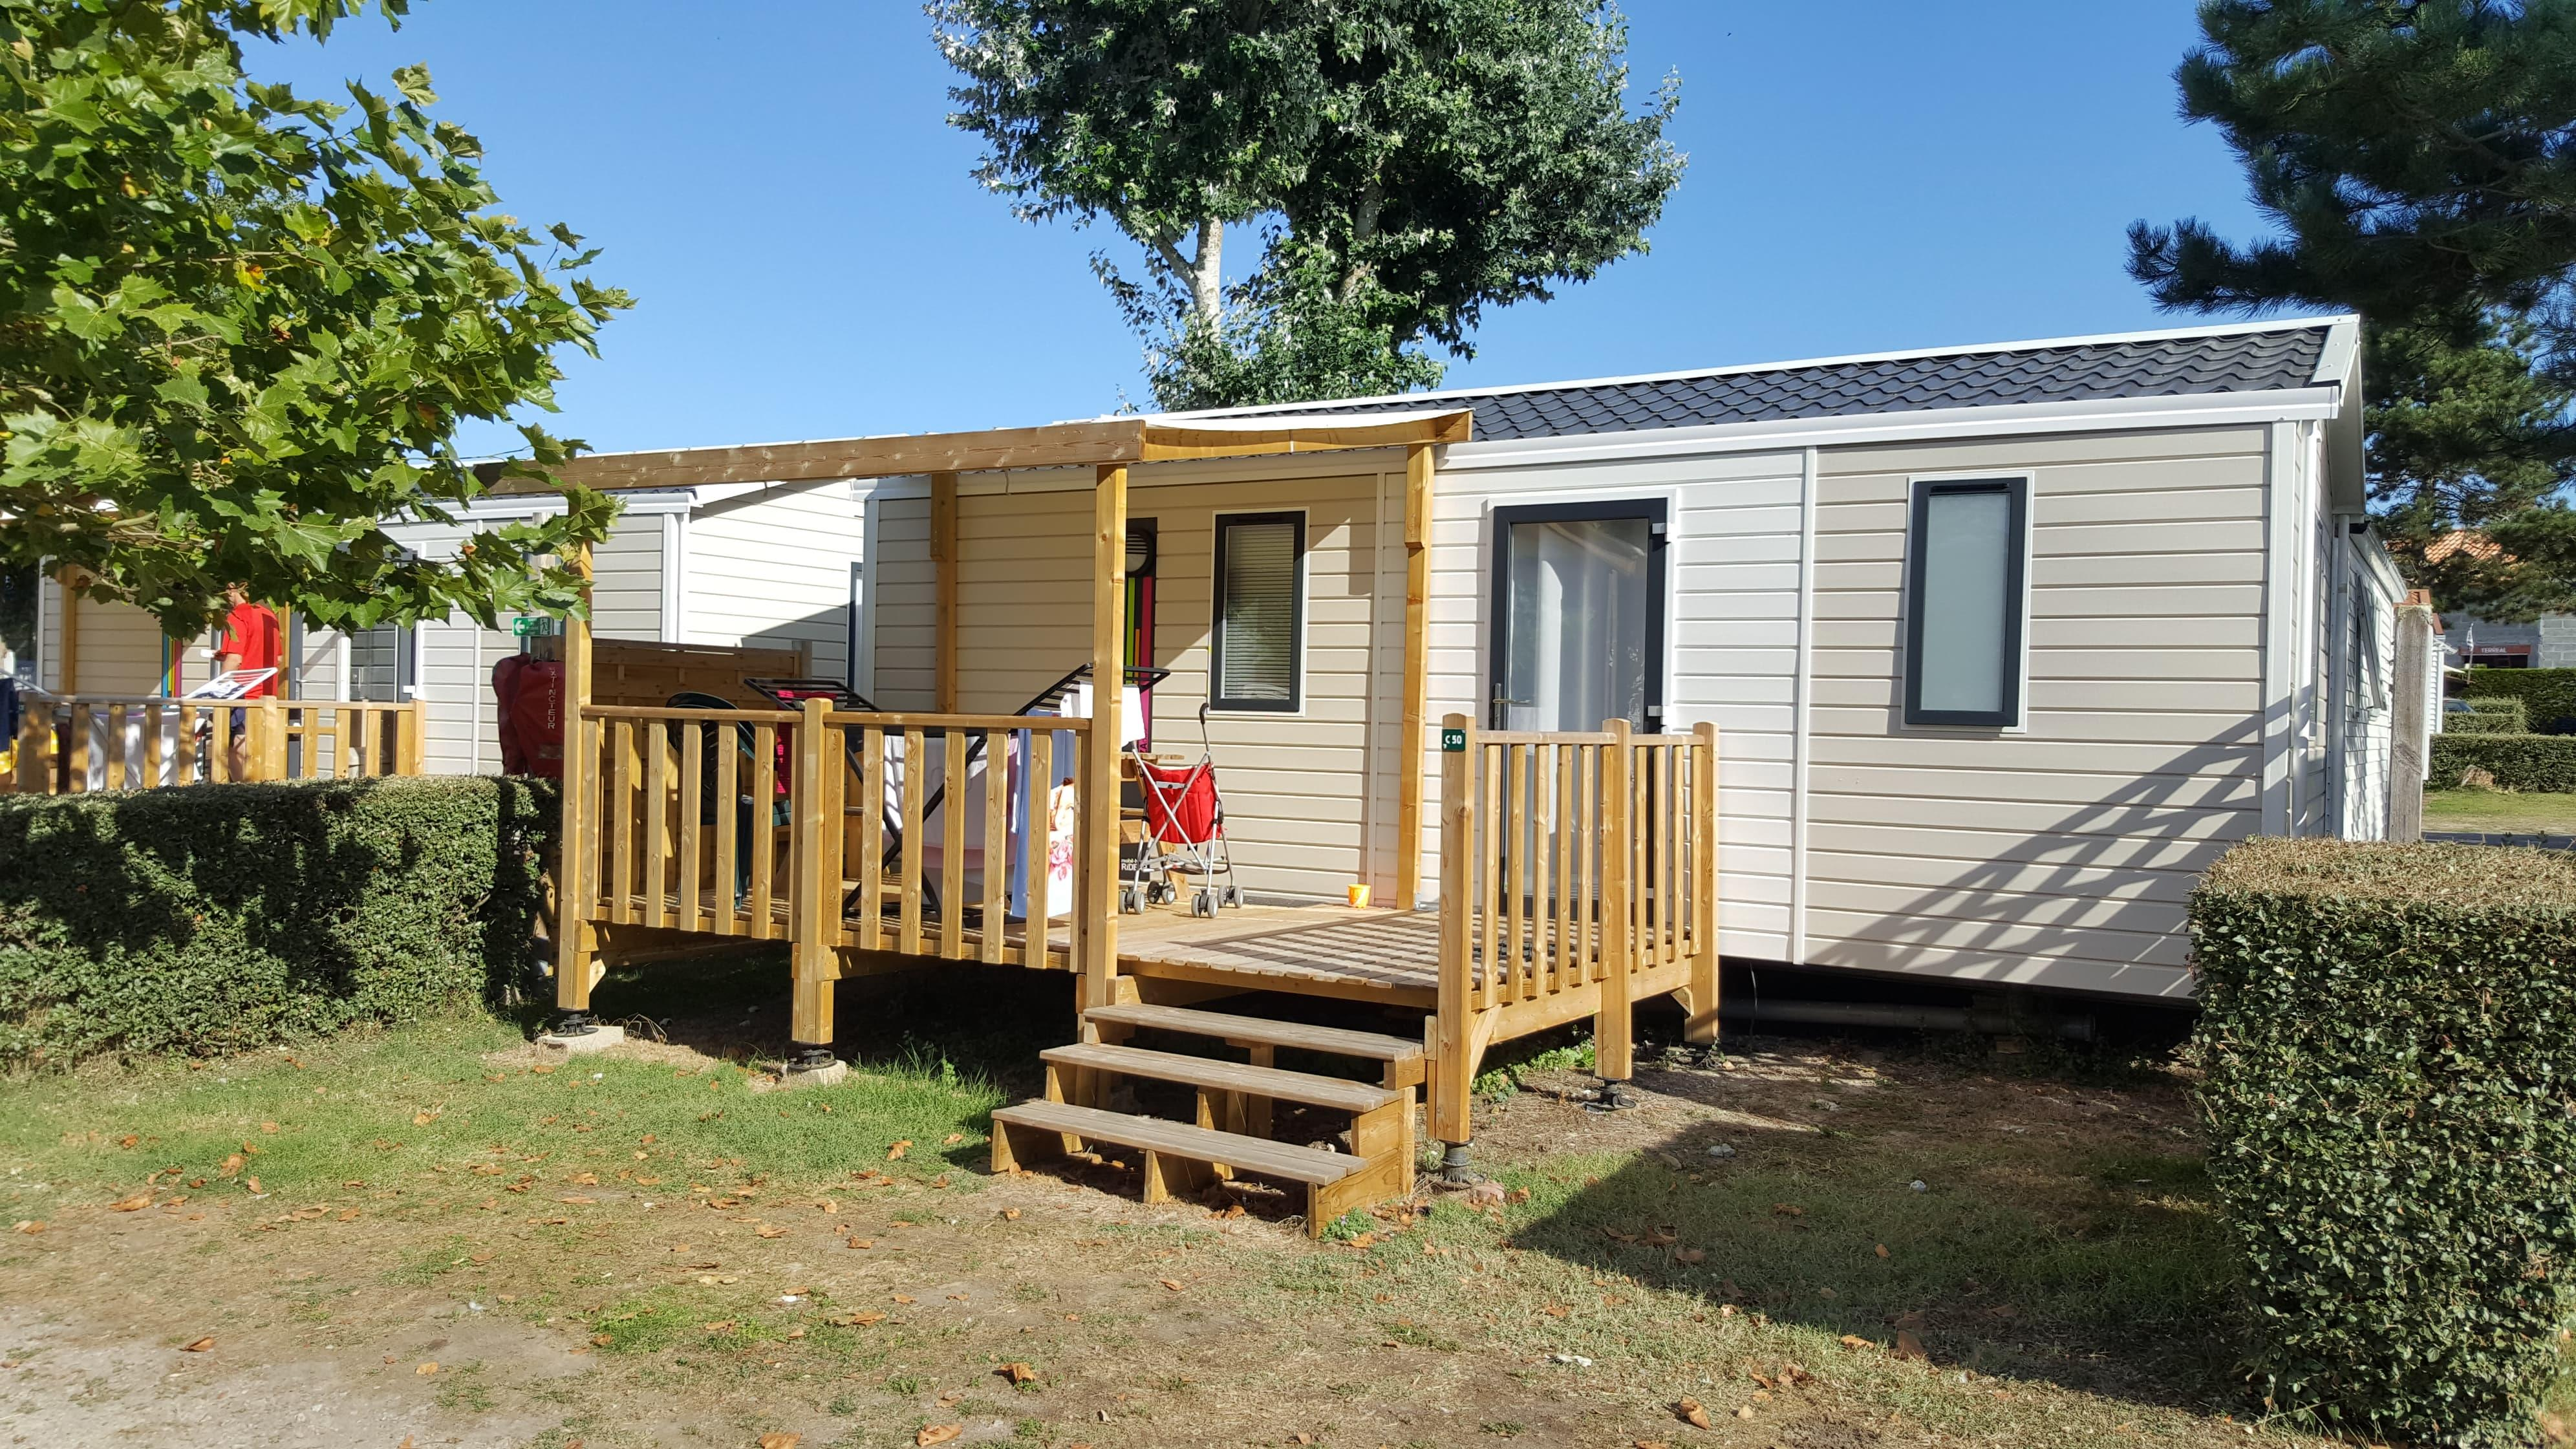 Huuraccommodaties - Mobil-Home 2Ch 27M² Confort - Camping Eleovic